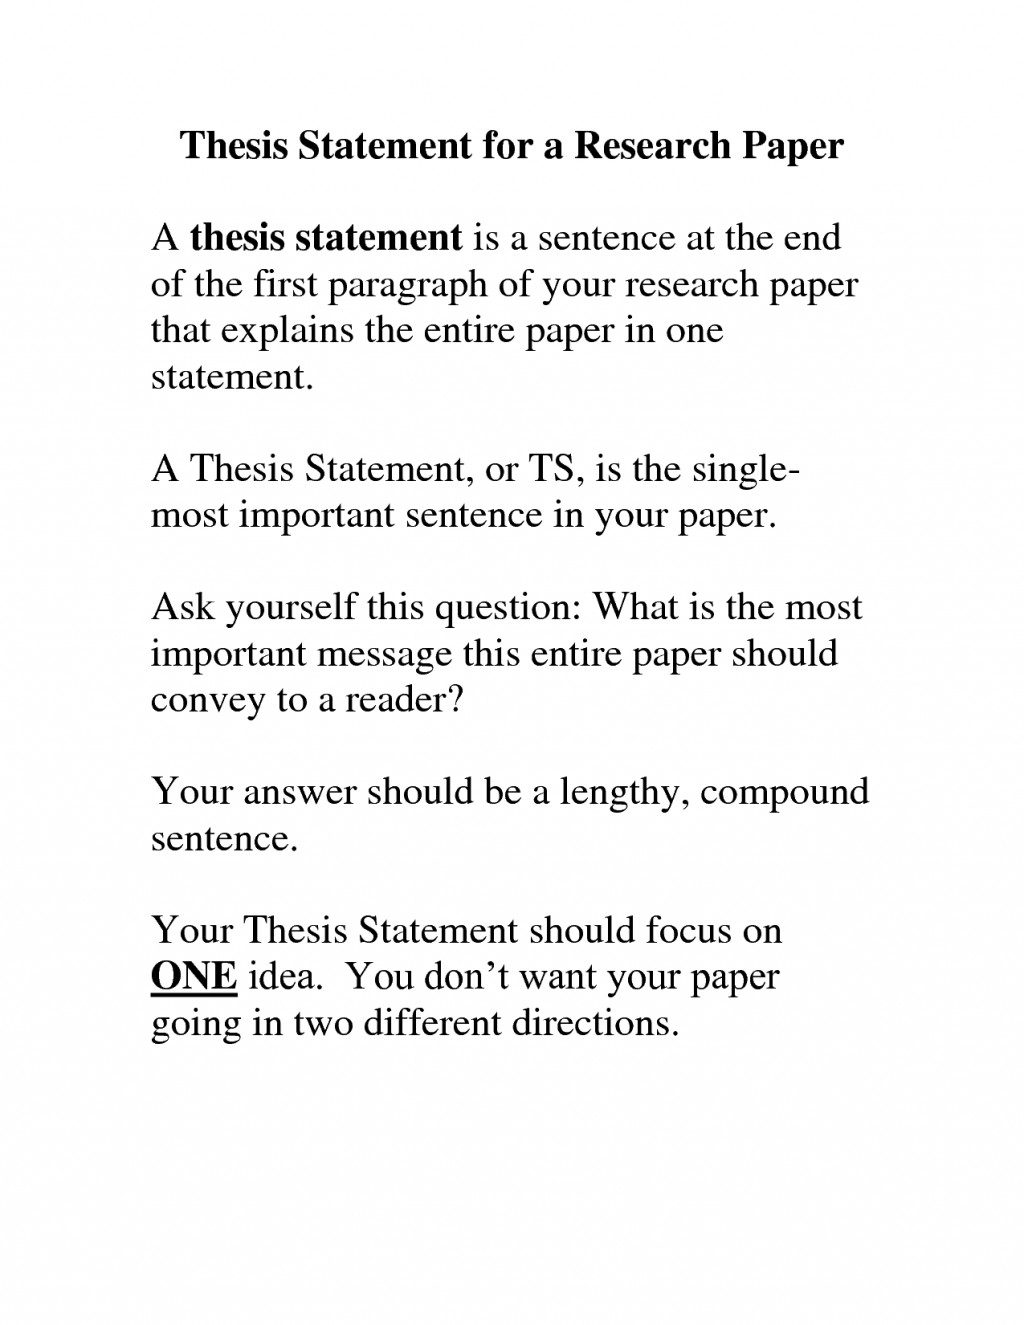 001 Argumentative Thesis Statement For Research Paper Amazing Examples Of Statements Papers Large